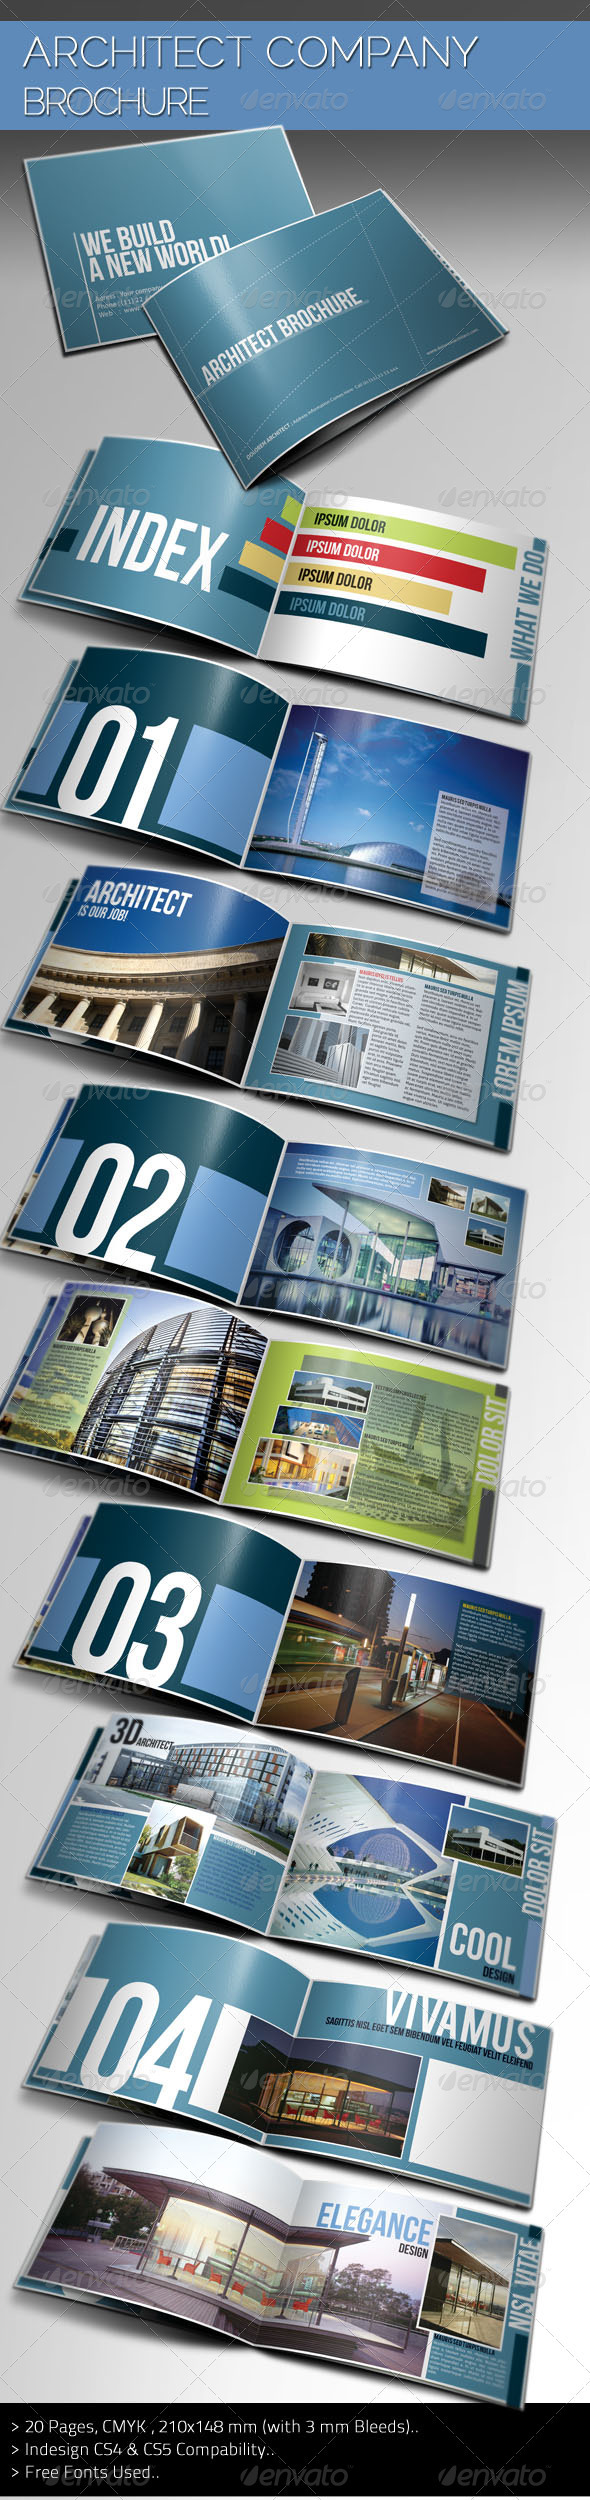 Architecture Brochure Template  Brochure Template Brochures And